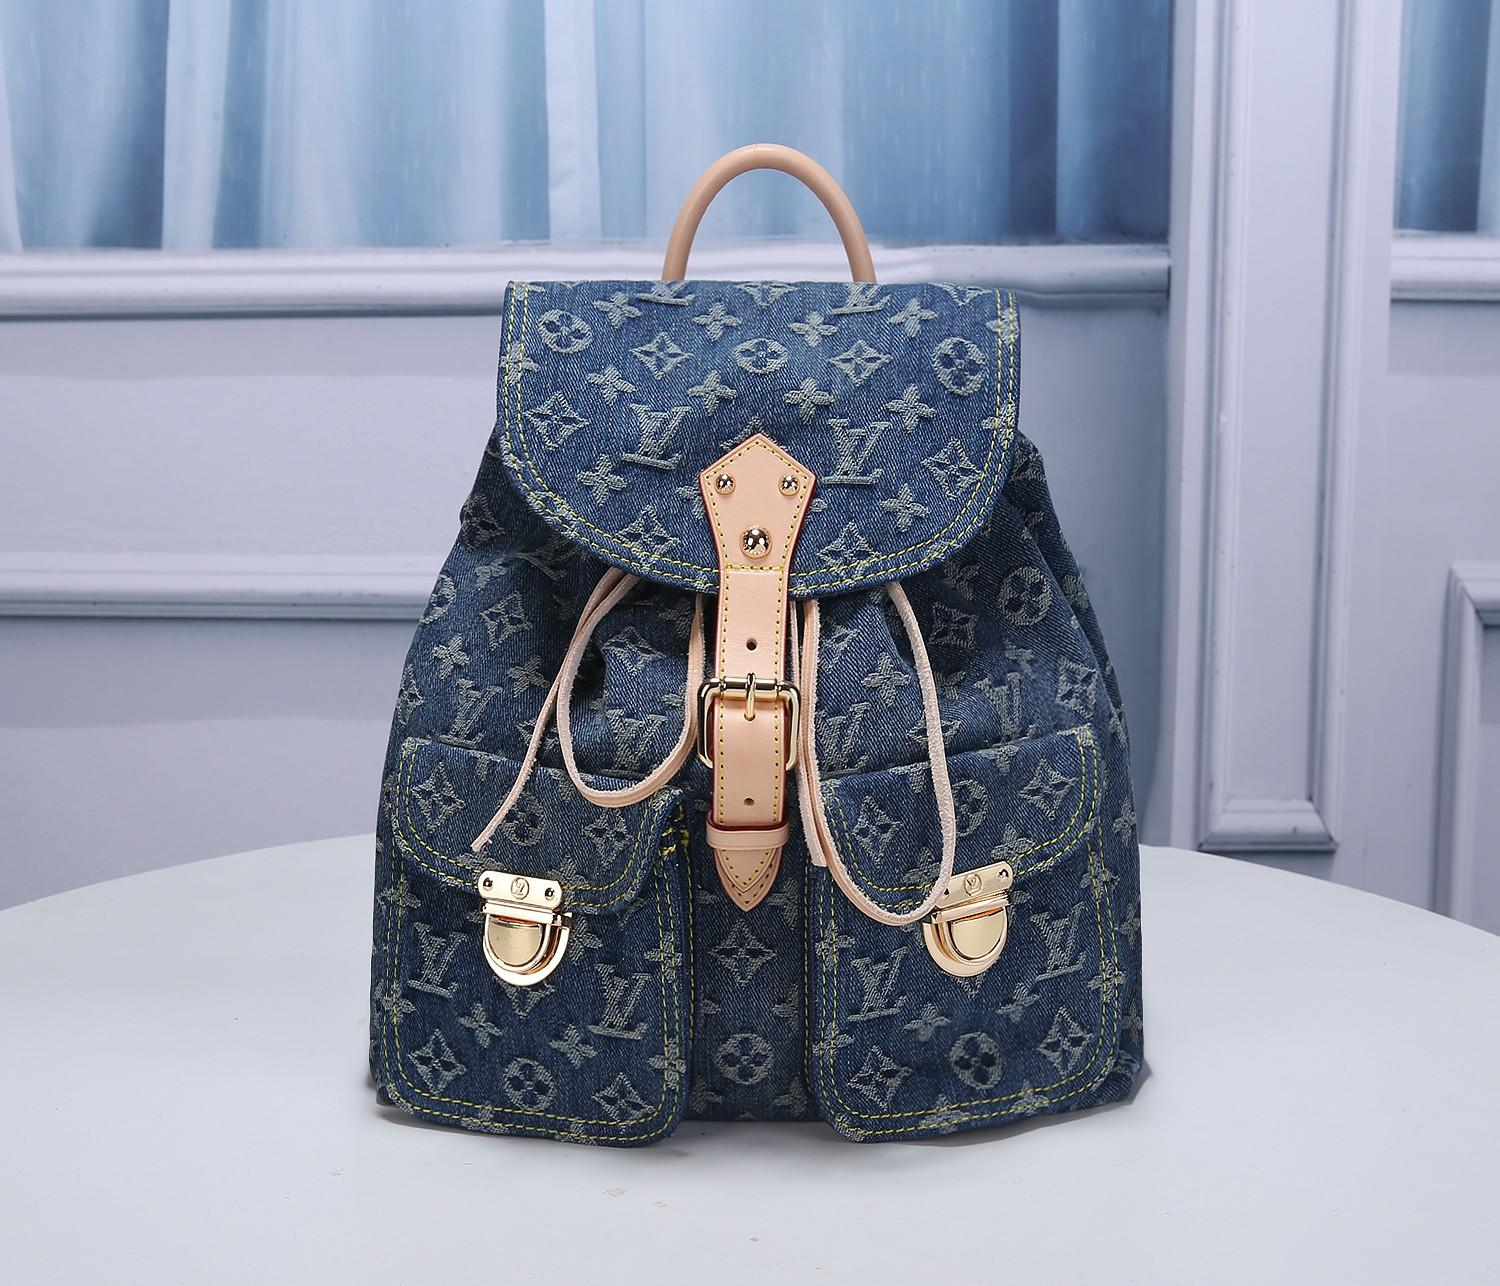 Replica Louis Vuitton M44460 Women Blue Denim Monogram Denim Sac a Dos Backpack